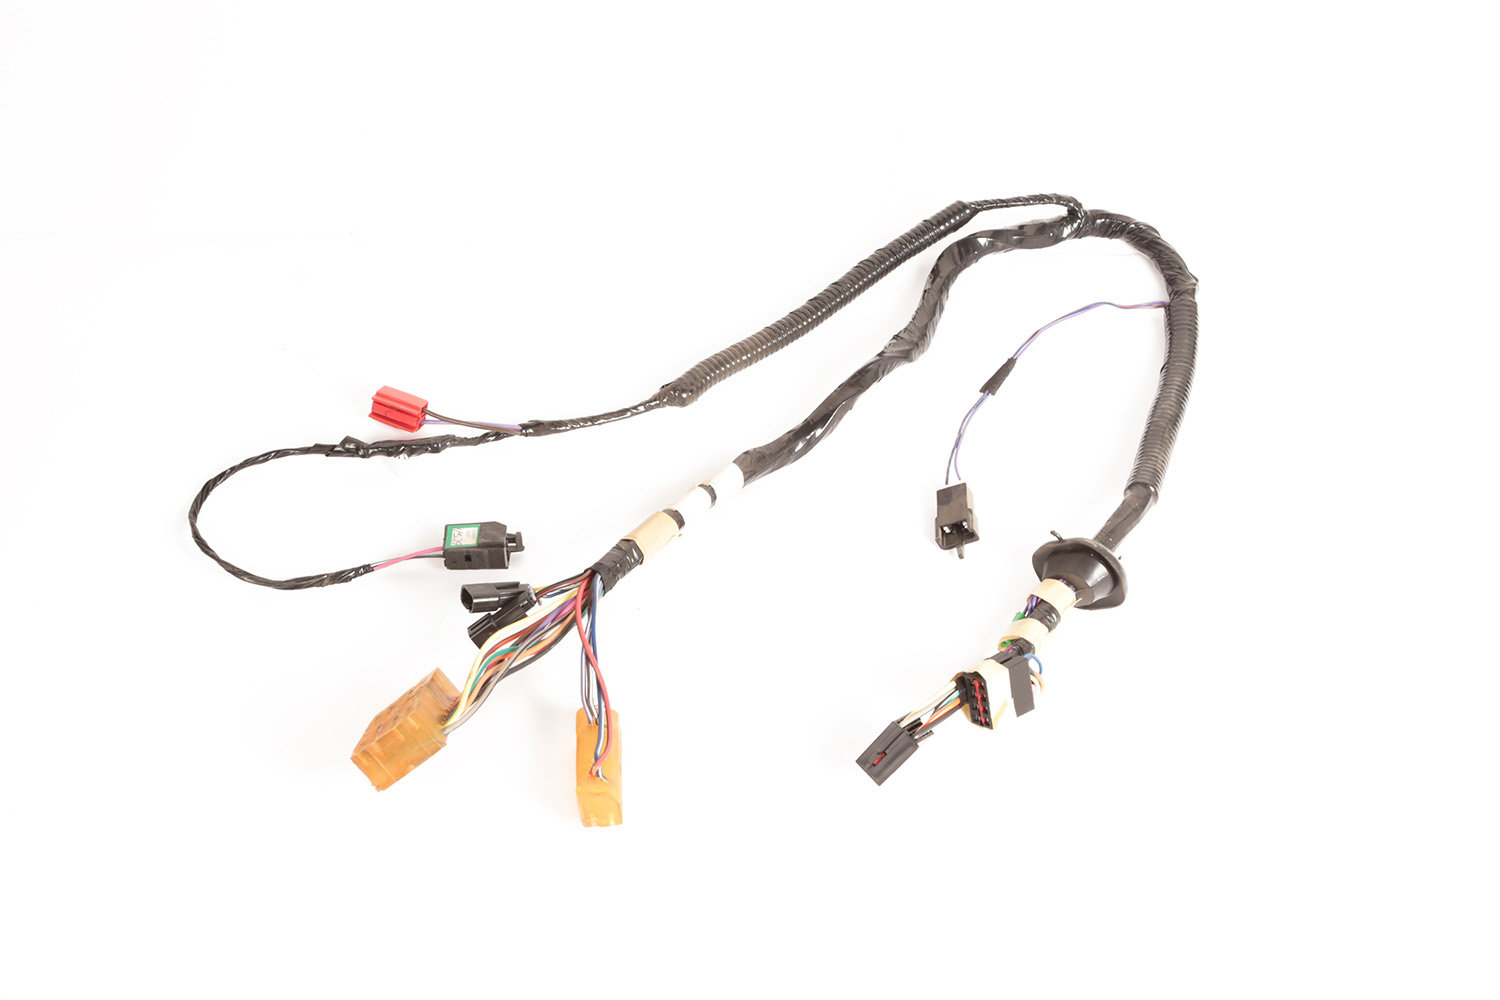 hight resolution of  wiring harness for 1996 jeep cherokee xj export 38 99 omix ada